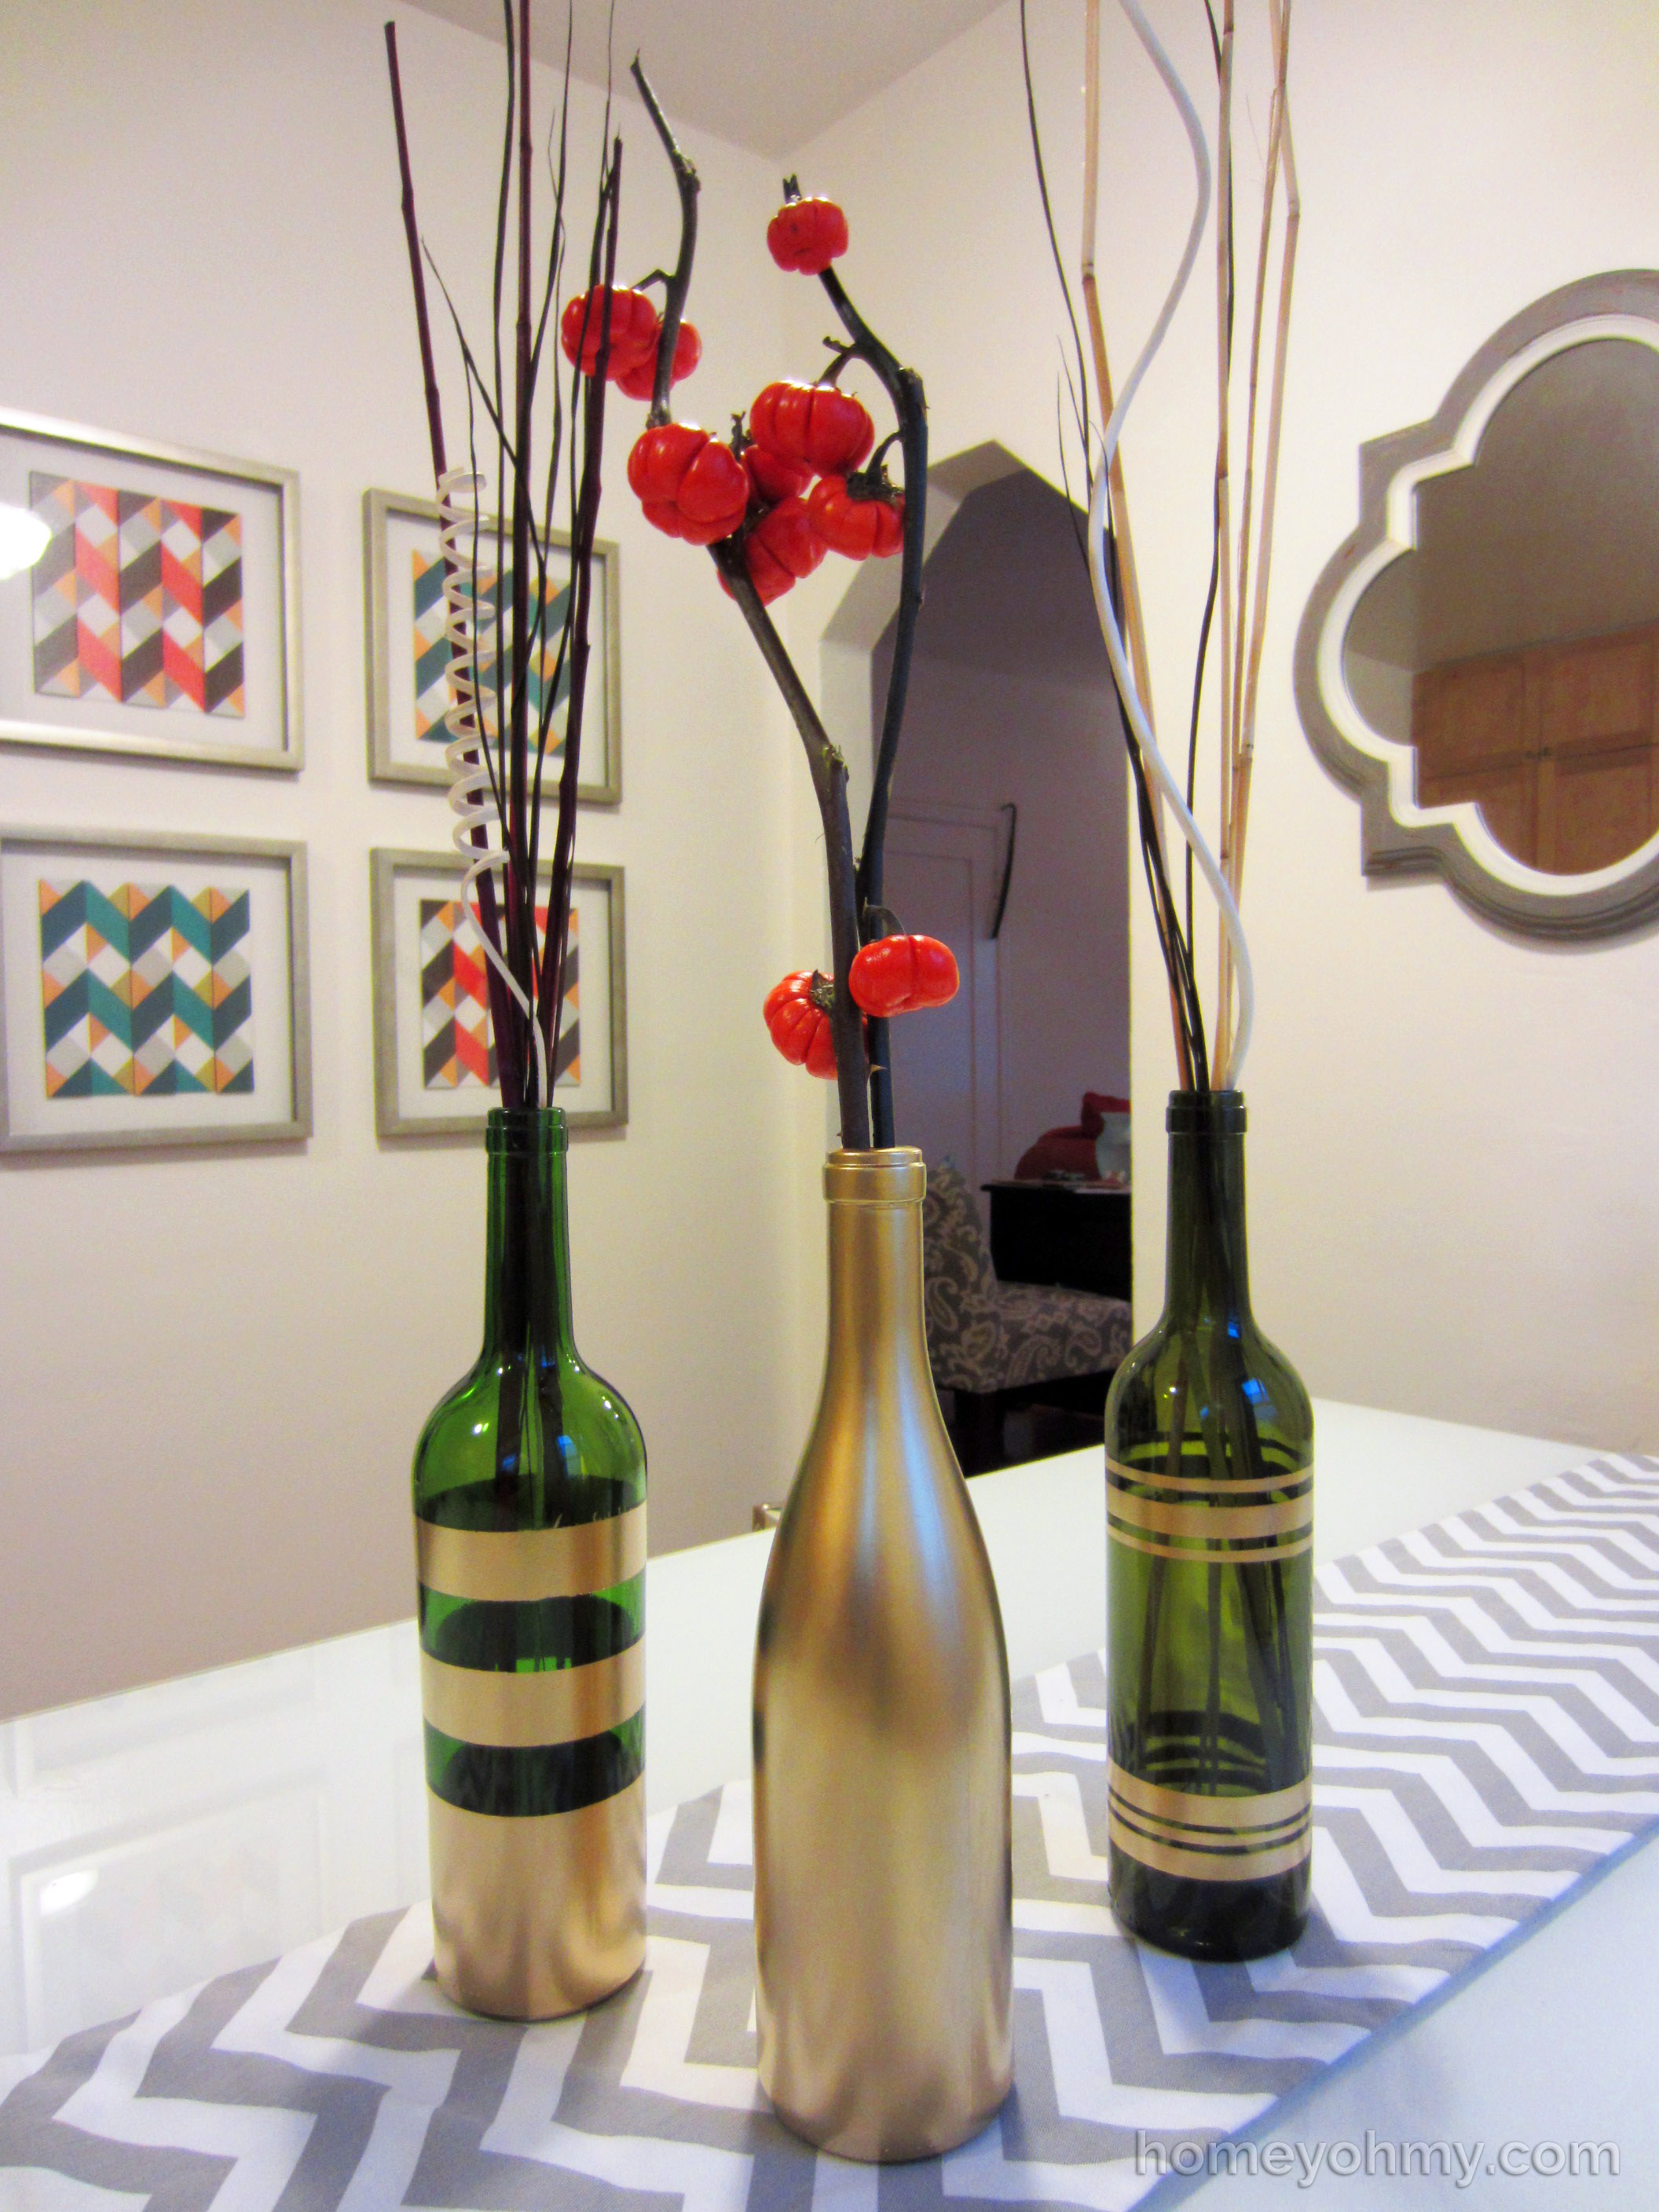 Diy spray painted wine bottles for fall decorating homey for What paint do you use to paint wine glasses